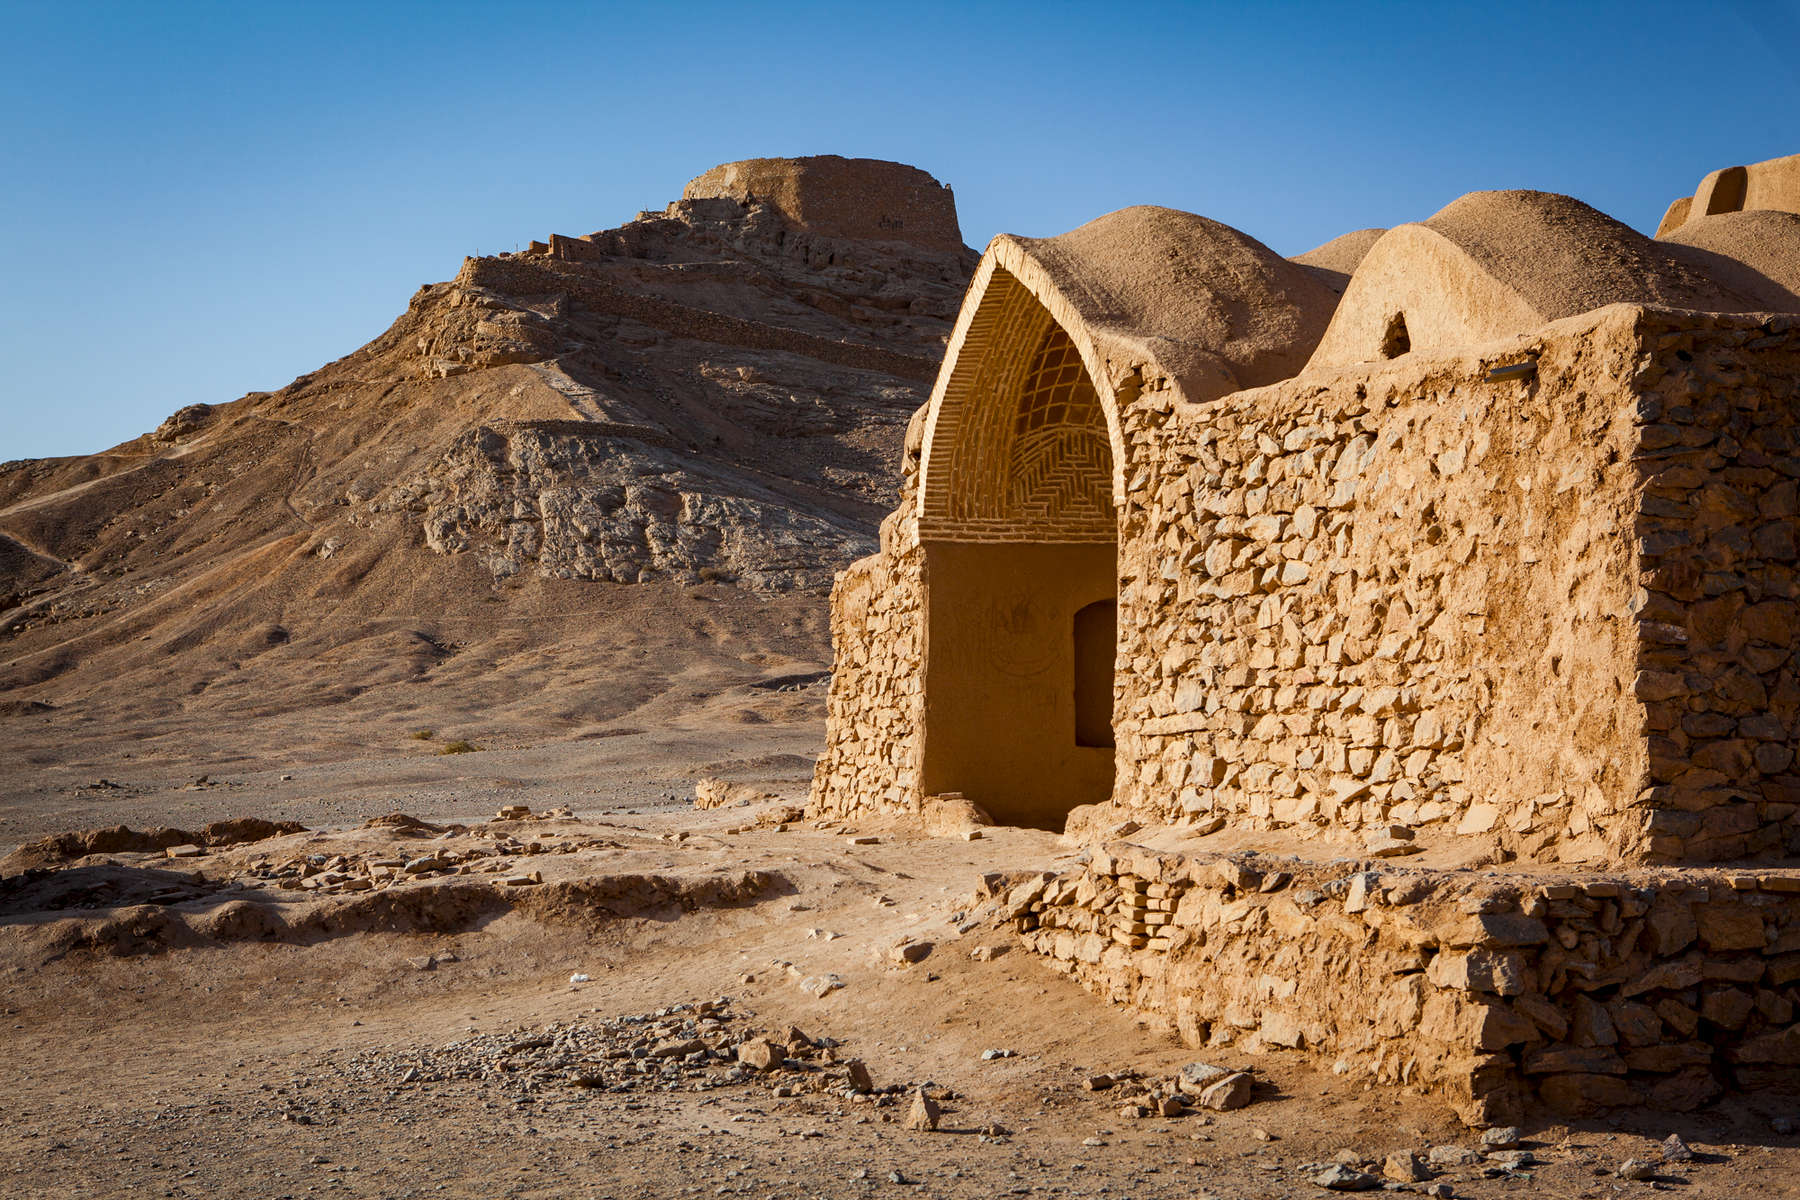 Zoroastrian Tower of Silence.The enclosure on the mountain top is one of many throghout Iran where followers of Zoroastrianism (the pre-Islamic religion of Persia) exposed their dead to the elements instead of burying them. They believed that burying the dead corrupted the earth.